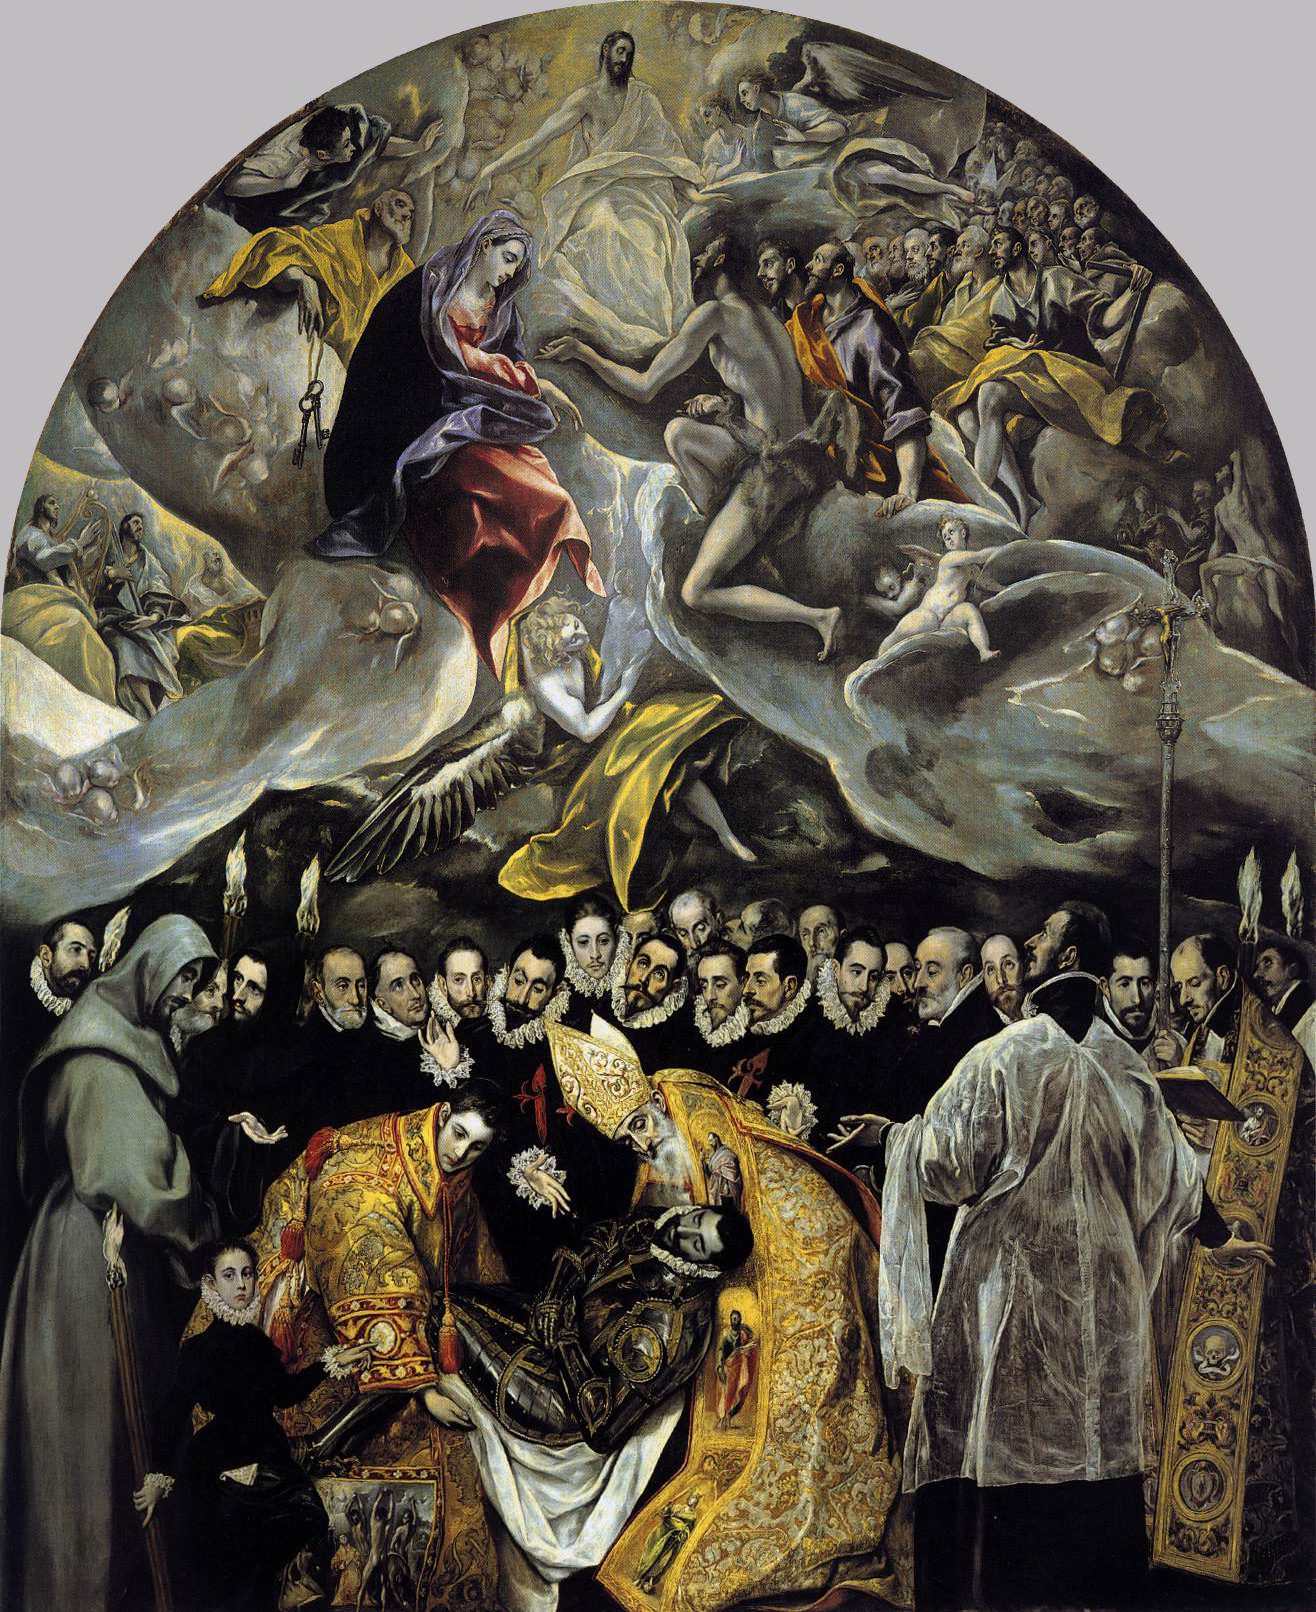 El_Greco_-_The_Burial_of_the_Count_of_Orgaz